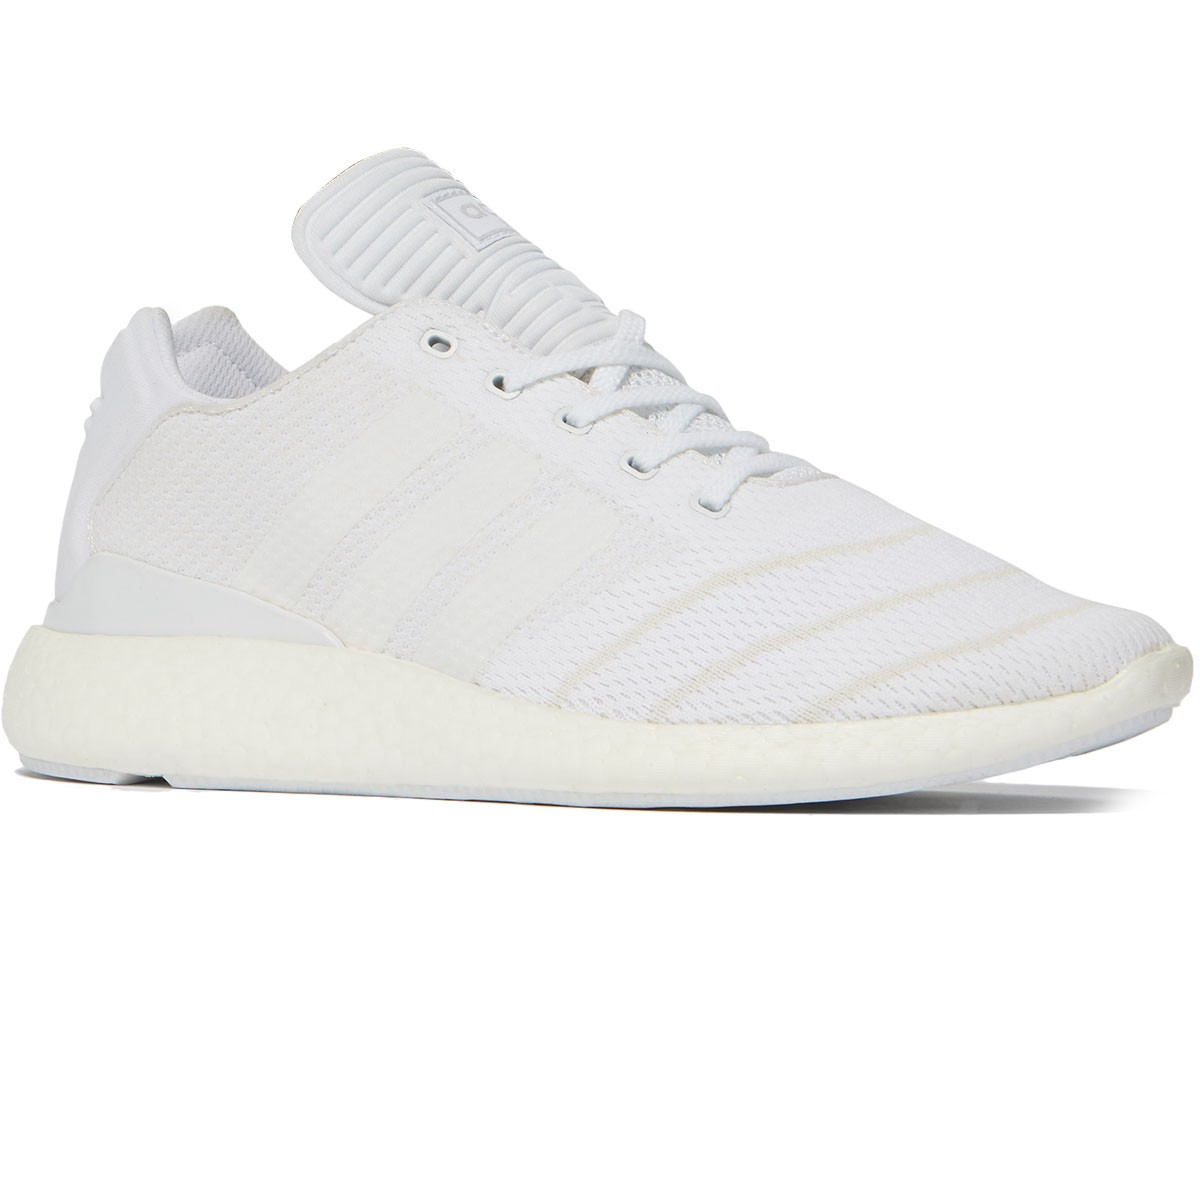 new product 2b962 4ddb9 adidas busenitz pure boost white